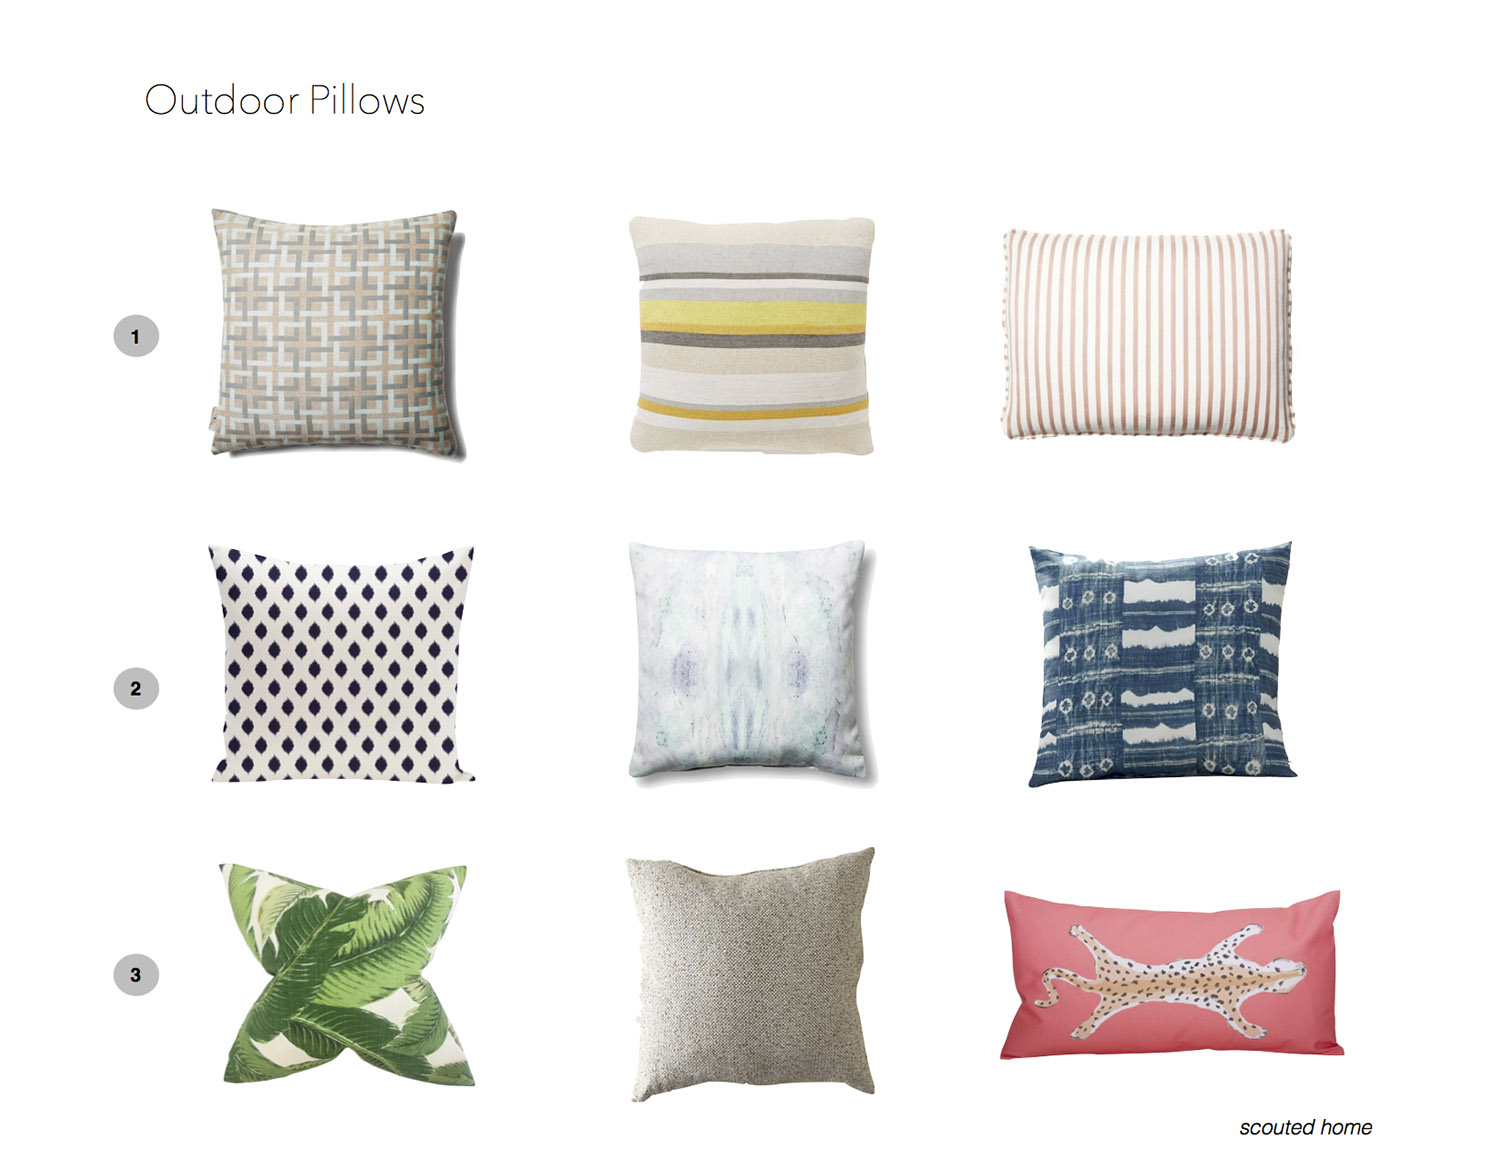 scouted_outdoorpillows.jpg